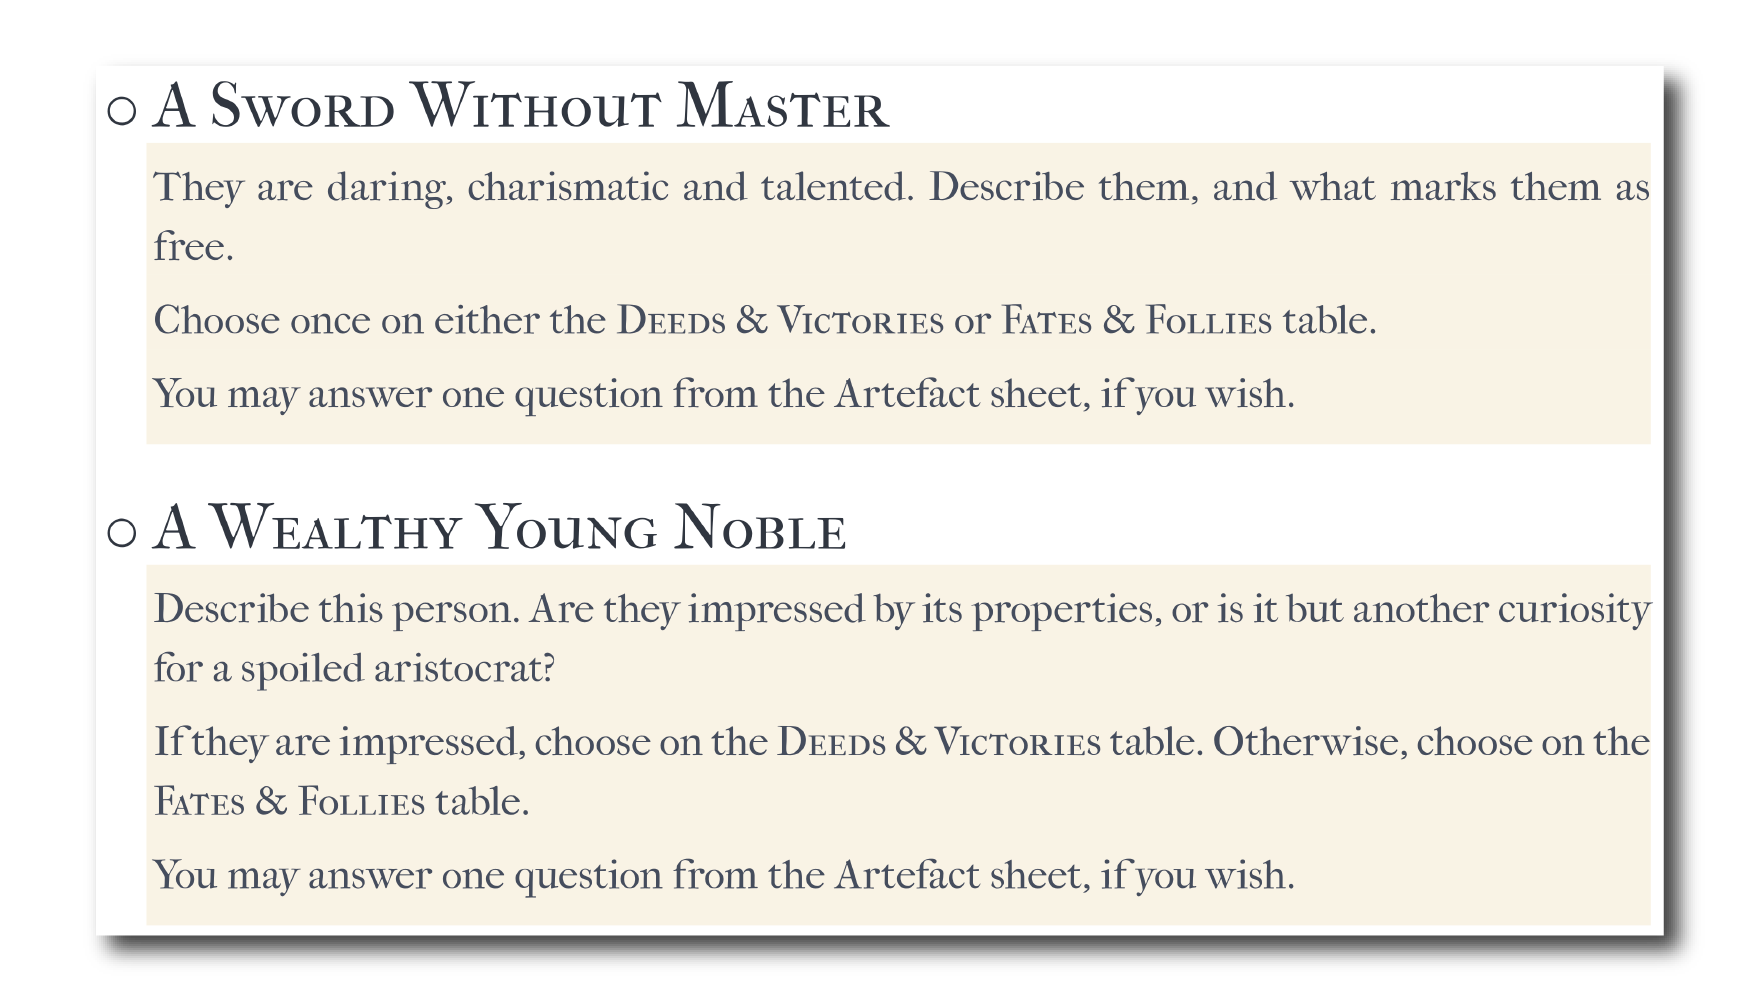 Two examples of wielders for The Artefact that show the types of characters the story might involve.